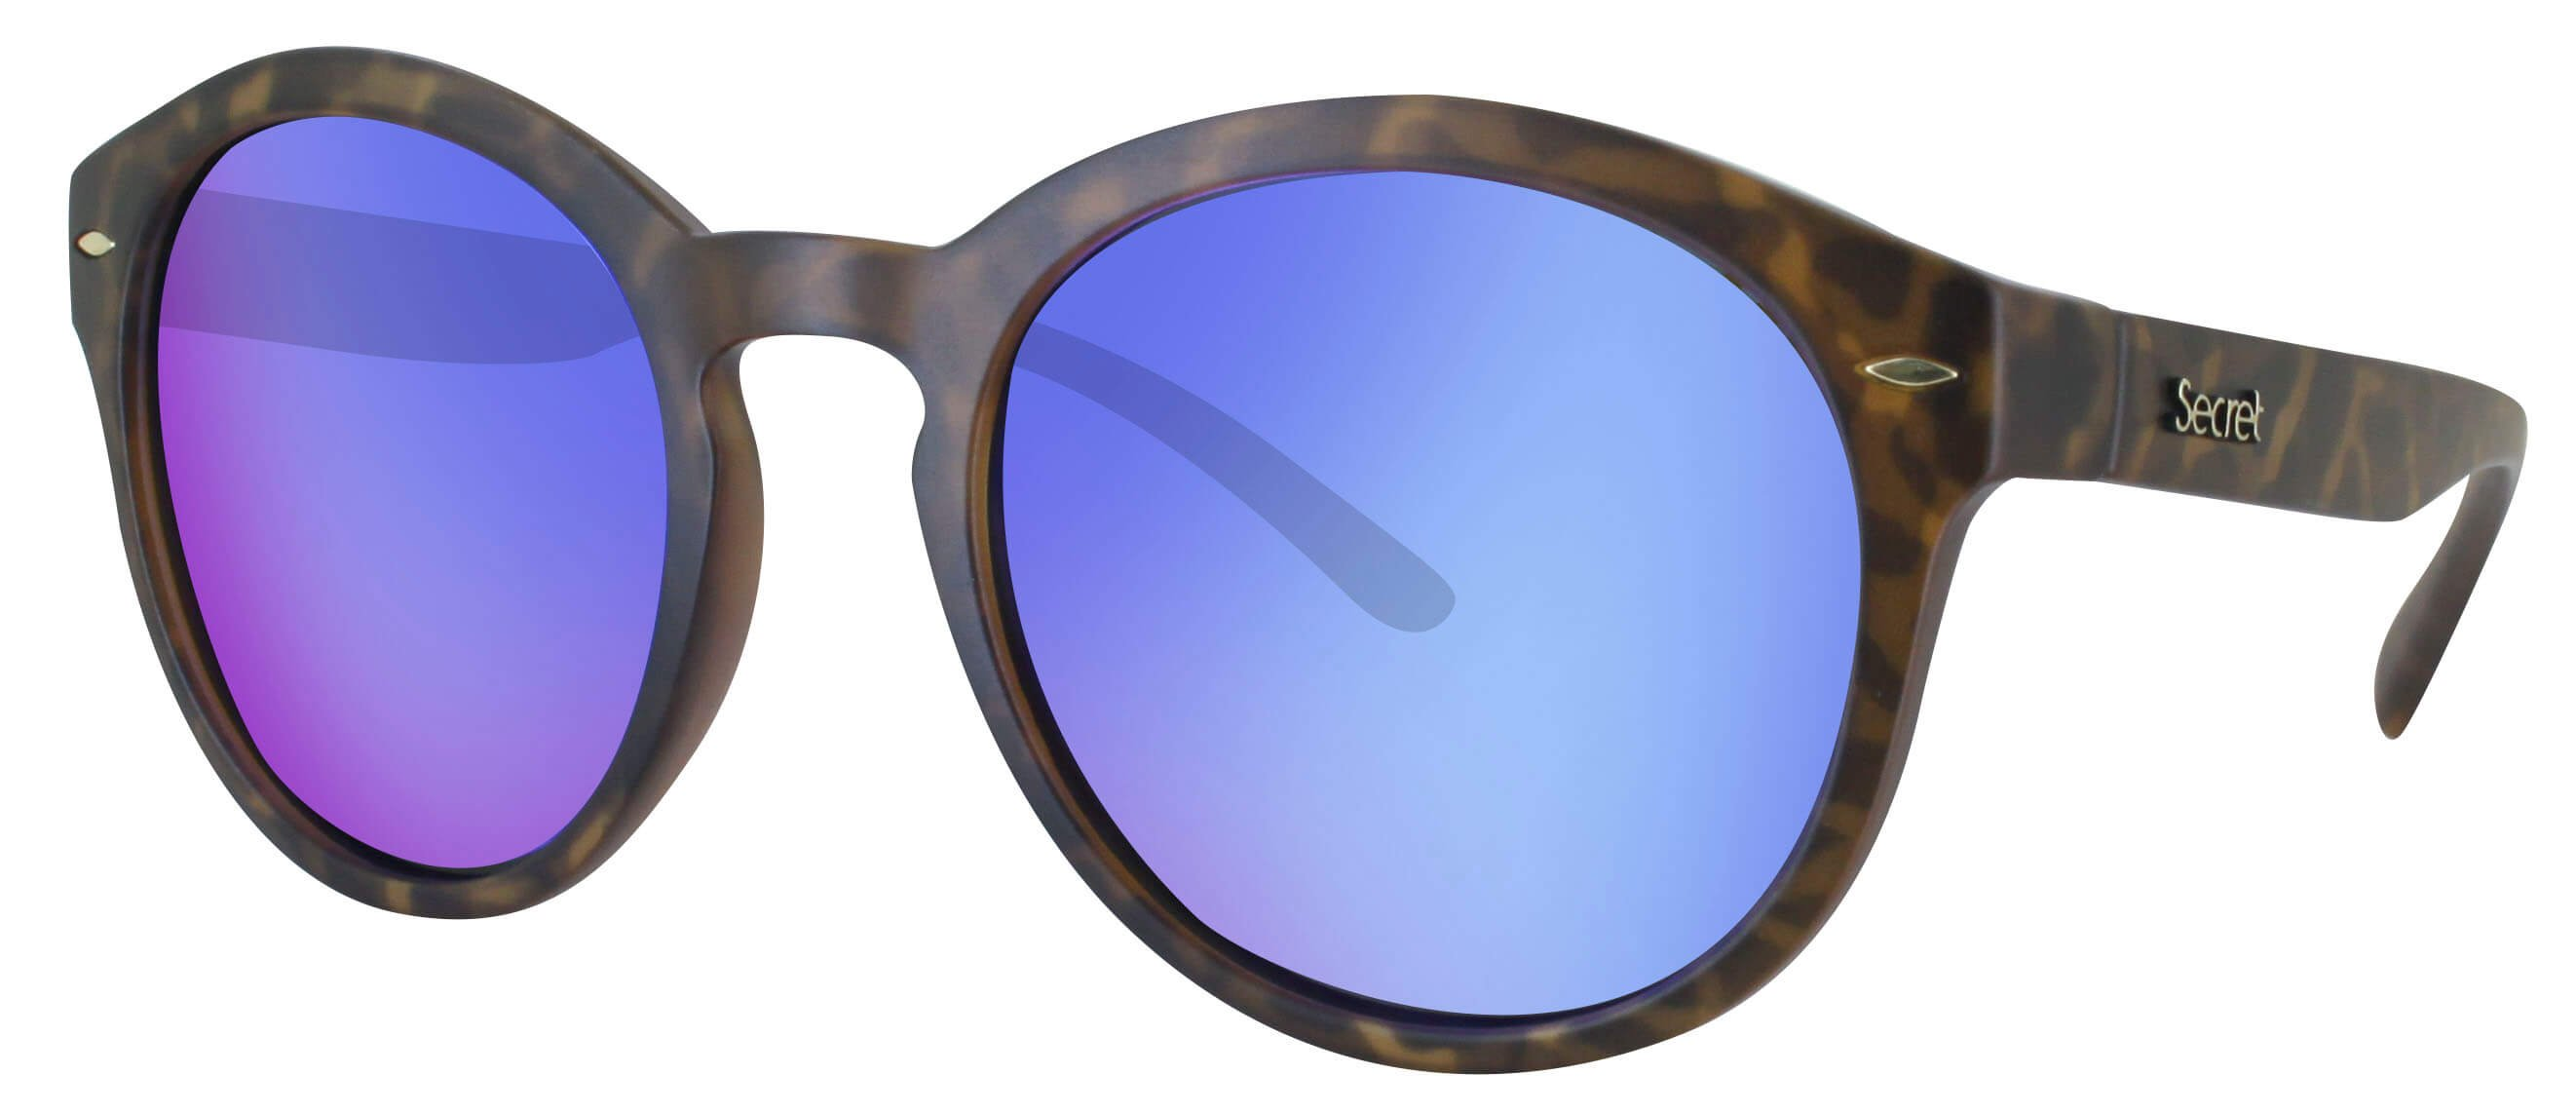 ÓC SECRET WANNABE MATTE HAVANA TURTLE / POLARIZED BLUE